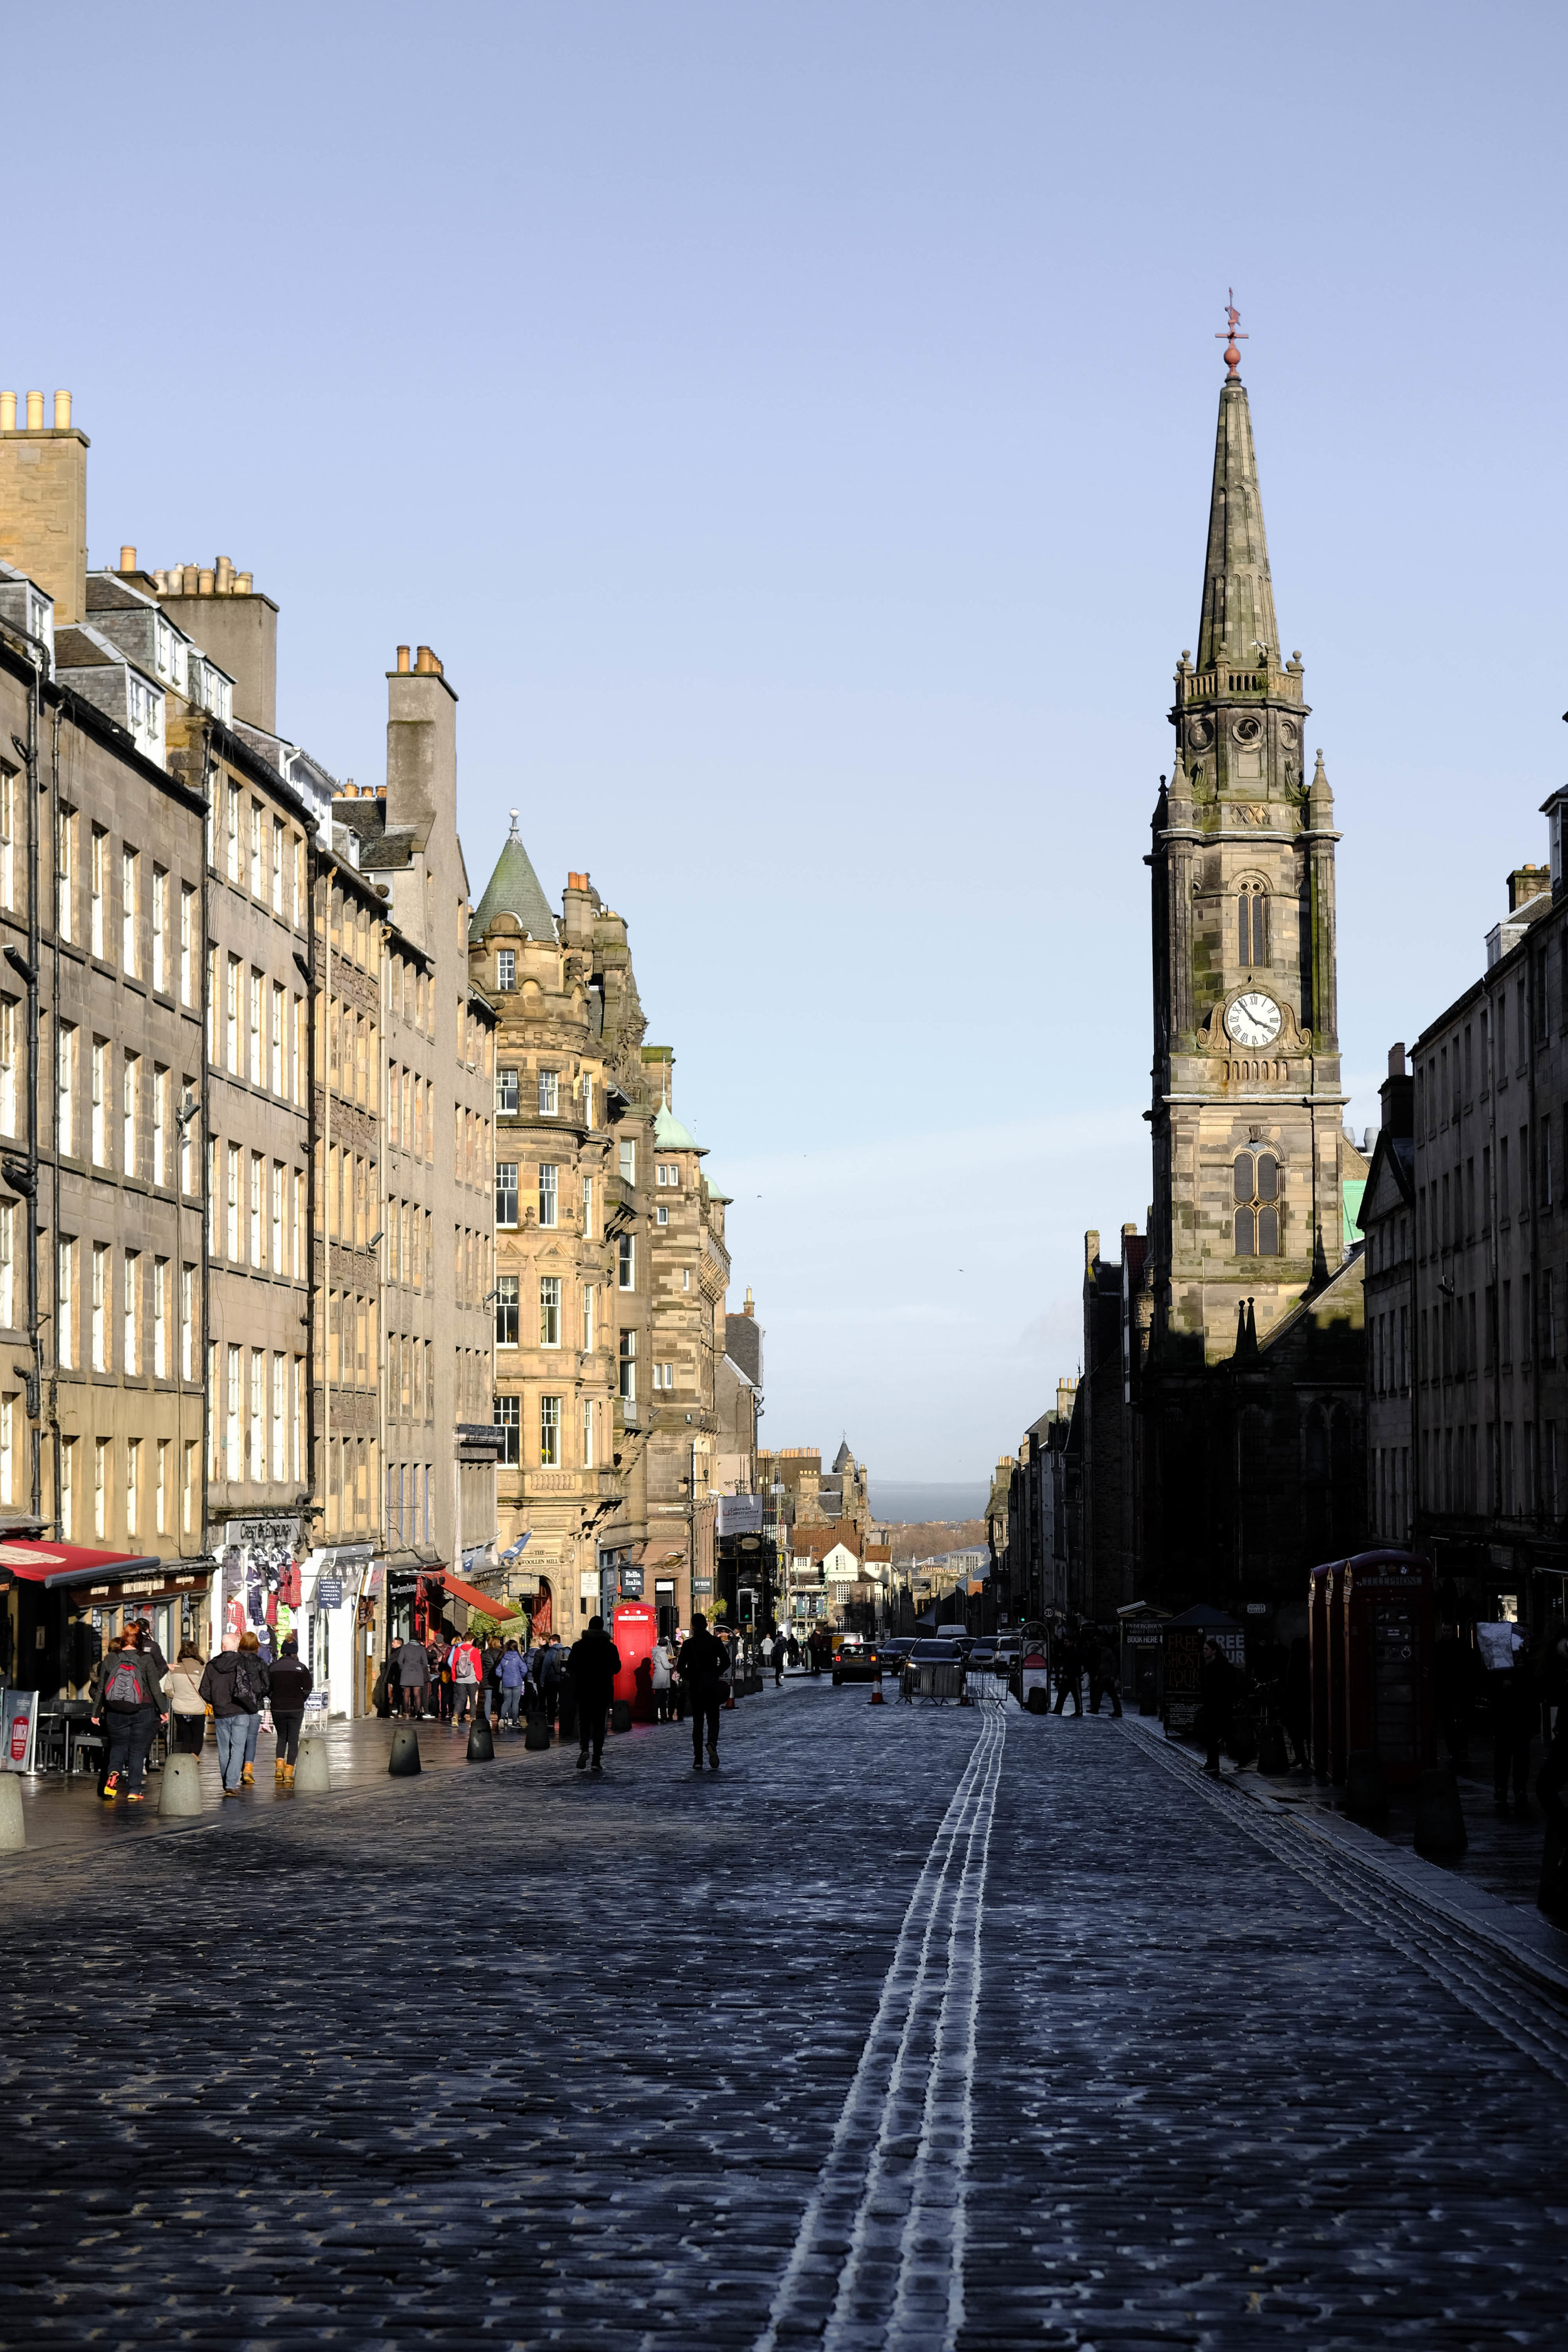 "<p style=""font-family:brandon-grotesque;font-weight:500; font-size:11px; text-center:left; color:light grey;letter-spacing: 1px"">MARCH 19, 2017 • OLD WORLD CHARM • � Edinburgh, Scotland</p>"